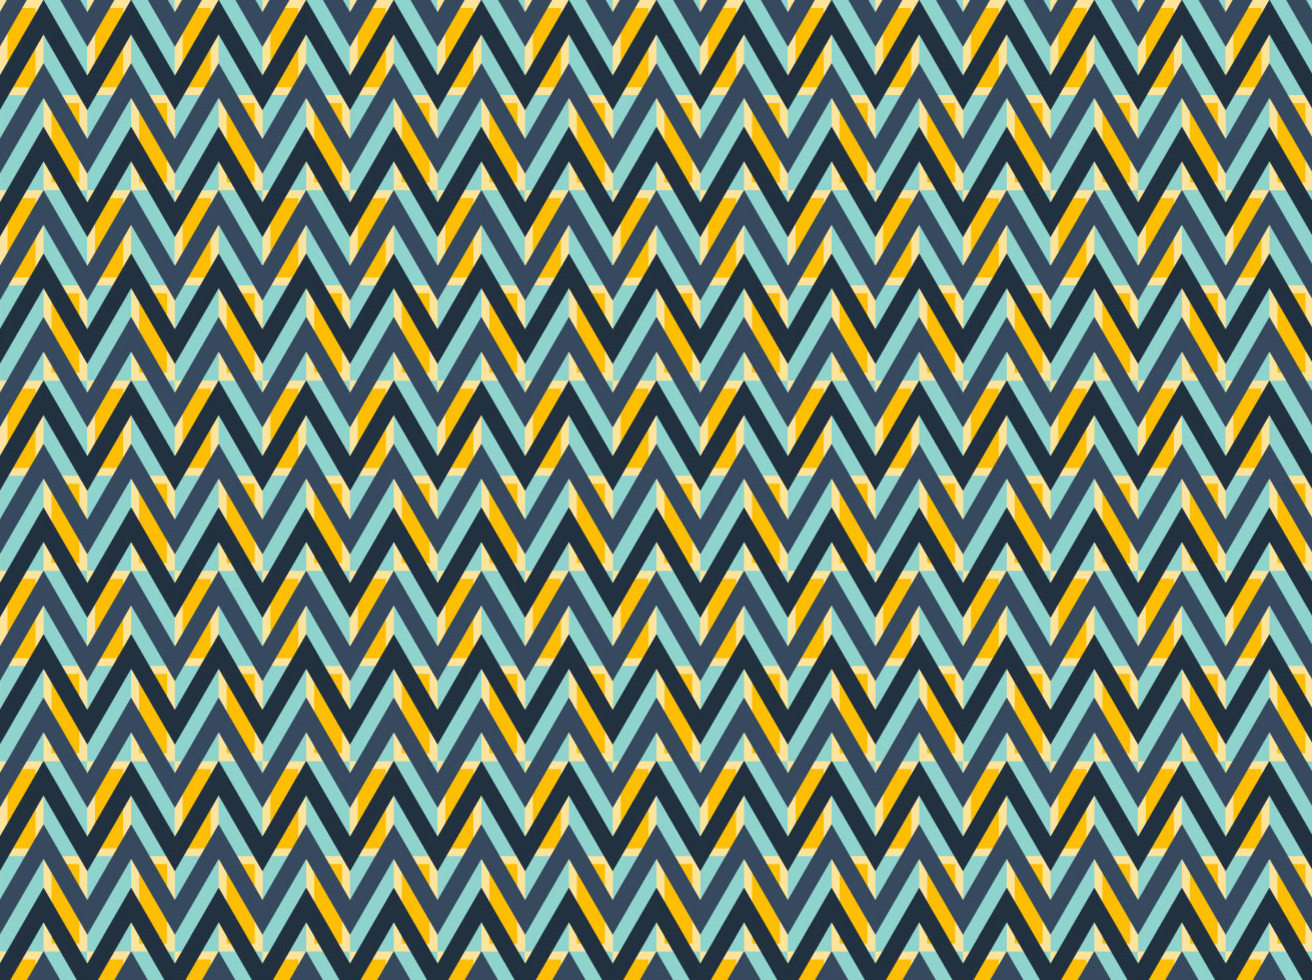 Free Abstract Geometric Pattern #3